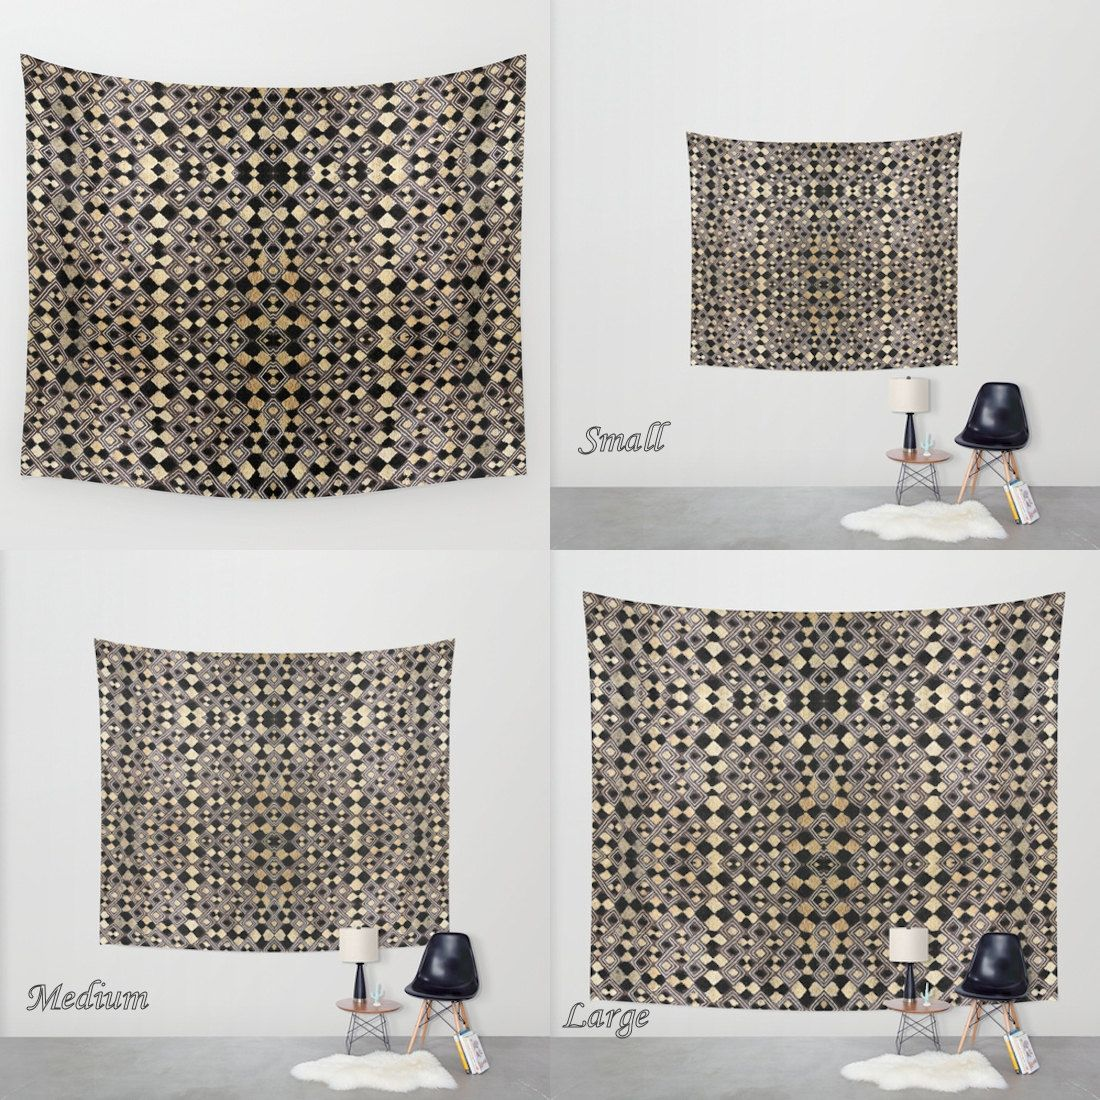 African Art - Wall Tapestry / Featuring Exclusive Kuba Raffia Cloth Design #4 / Large Wall Art by GalleriaPrimitiva on Etsy